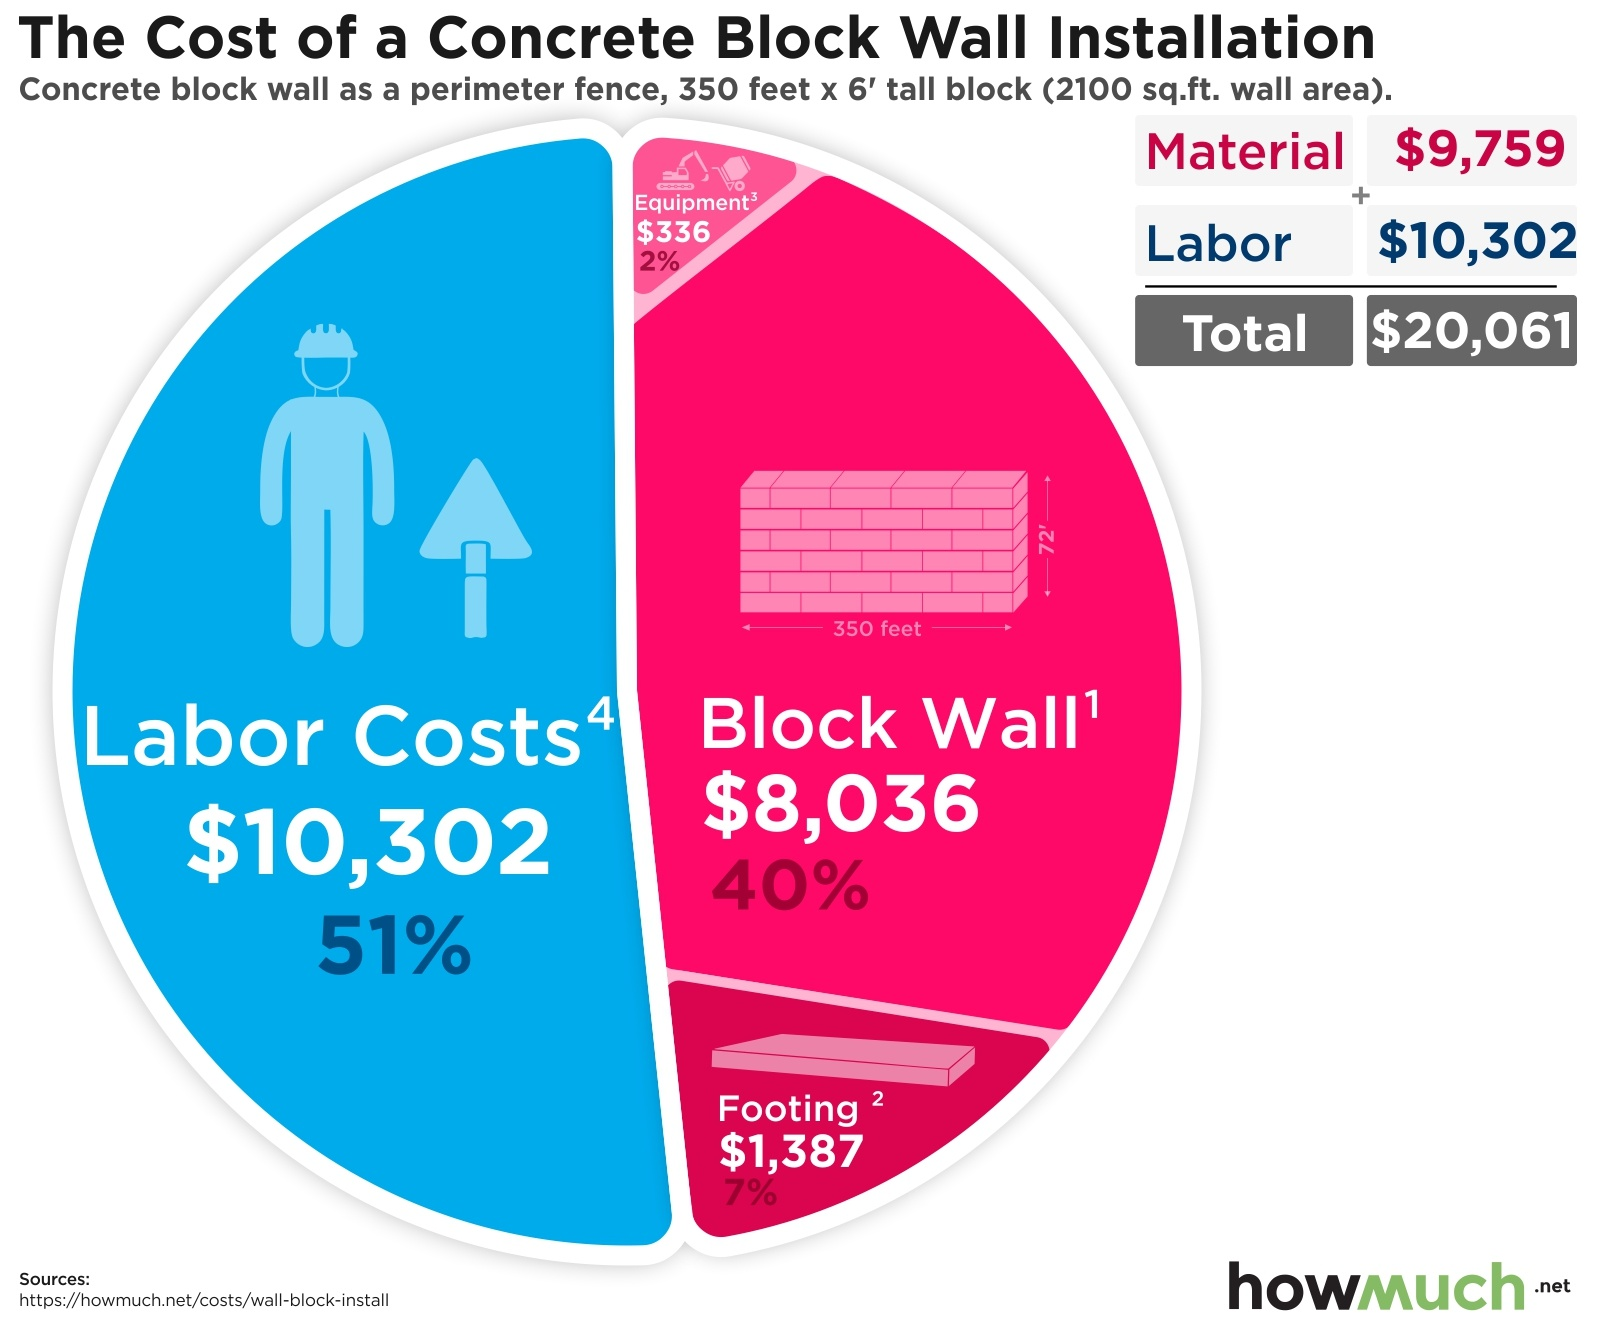 The Cost of a Concrete Block Wall Installation